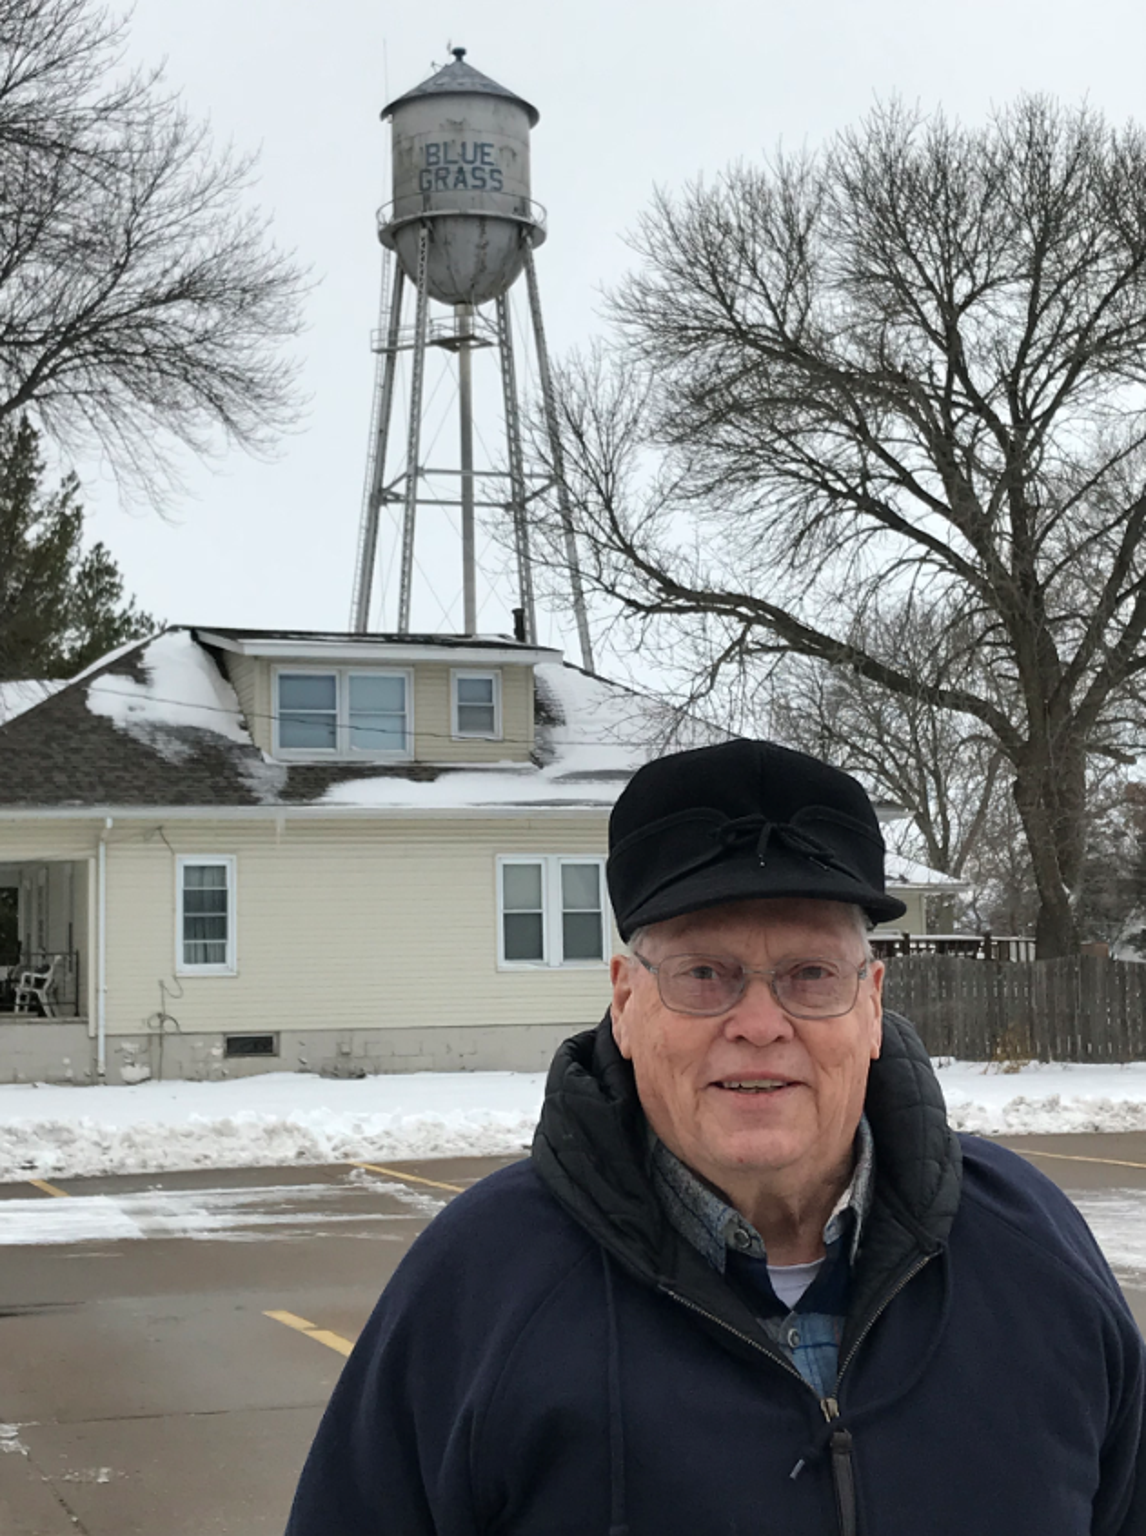 Paul Barnes, the longtime mayor of Blue Grass, Iowa.